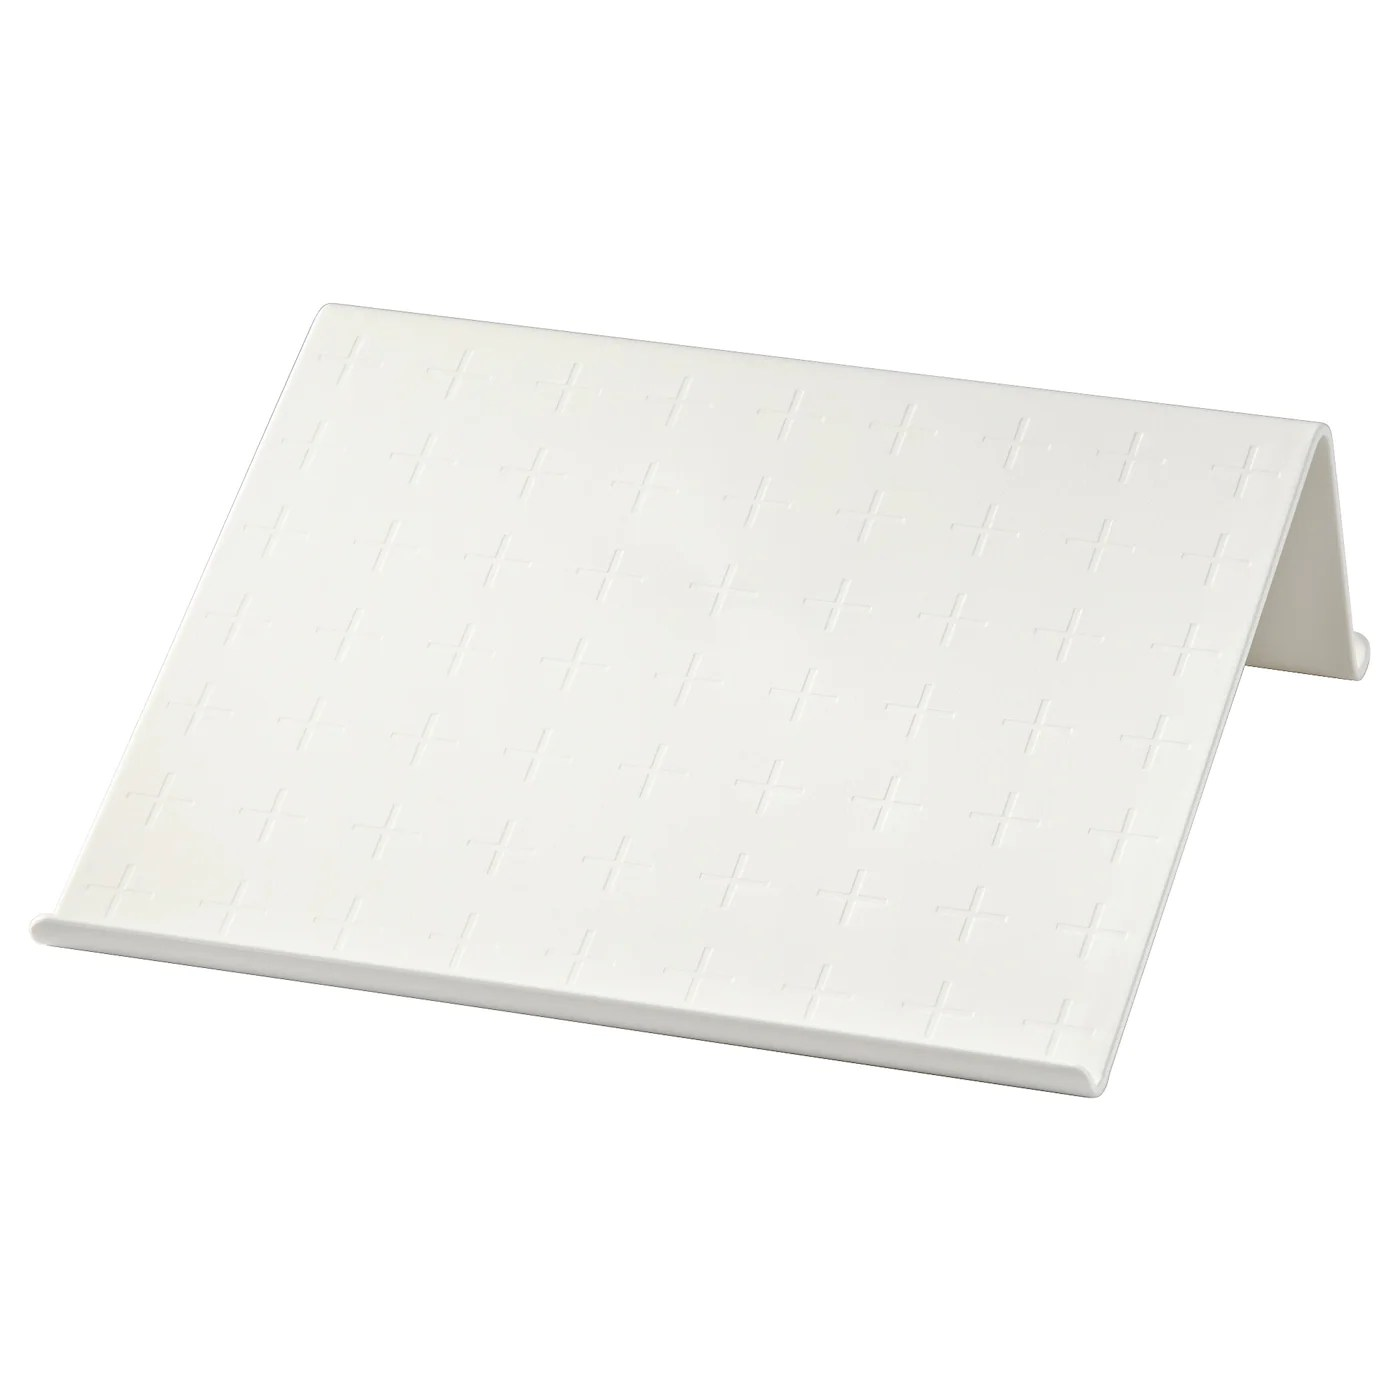 Support Tablette Cuisine Ikea Isberget Support Tablette Blanc 25x25 Cm Ikea